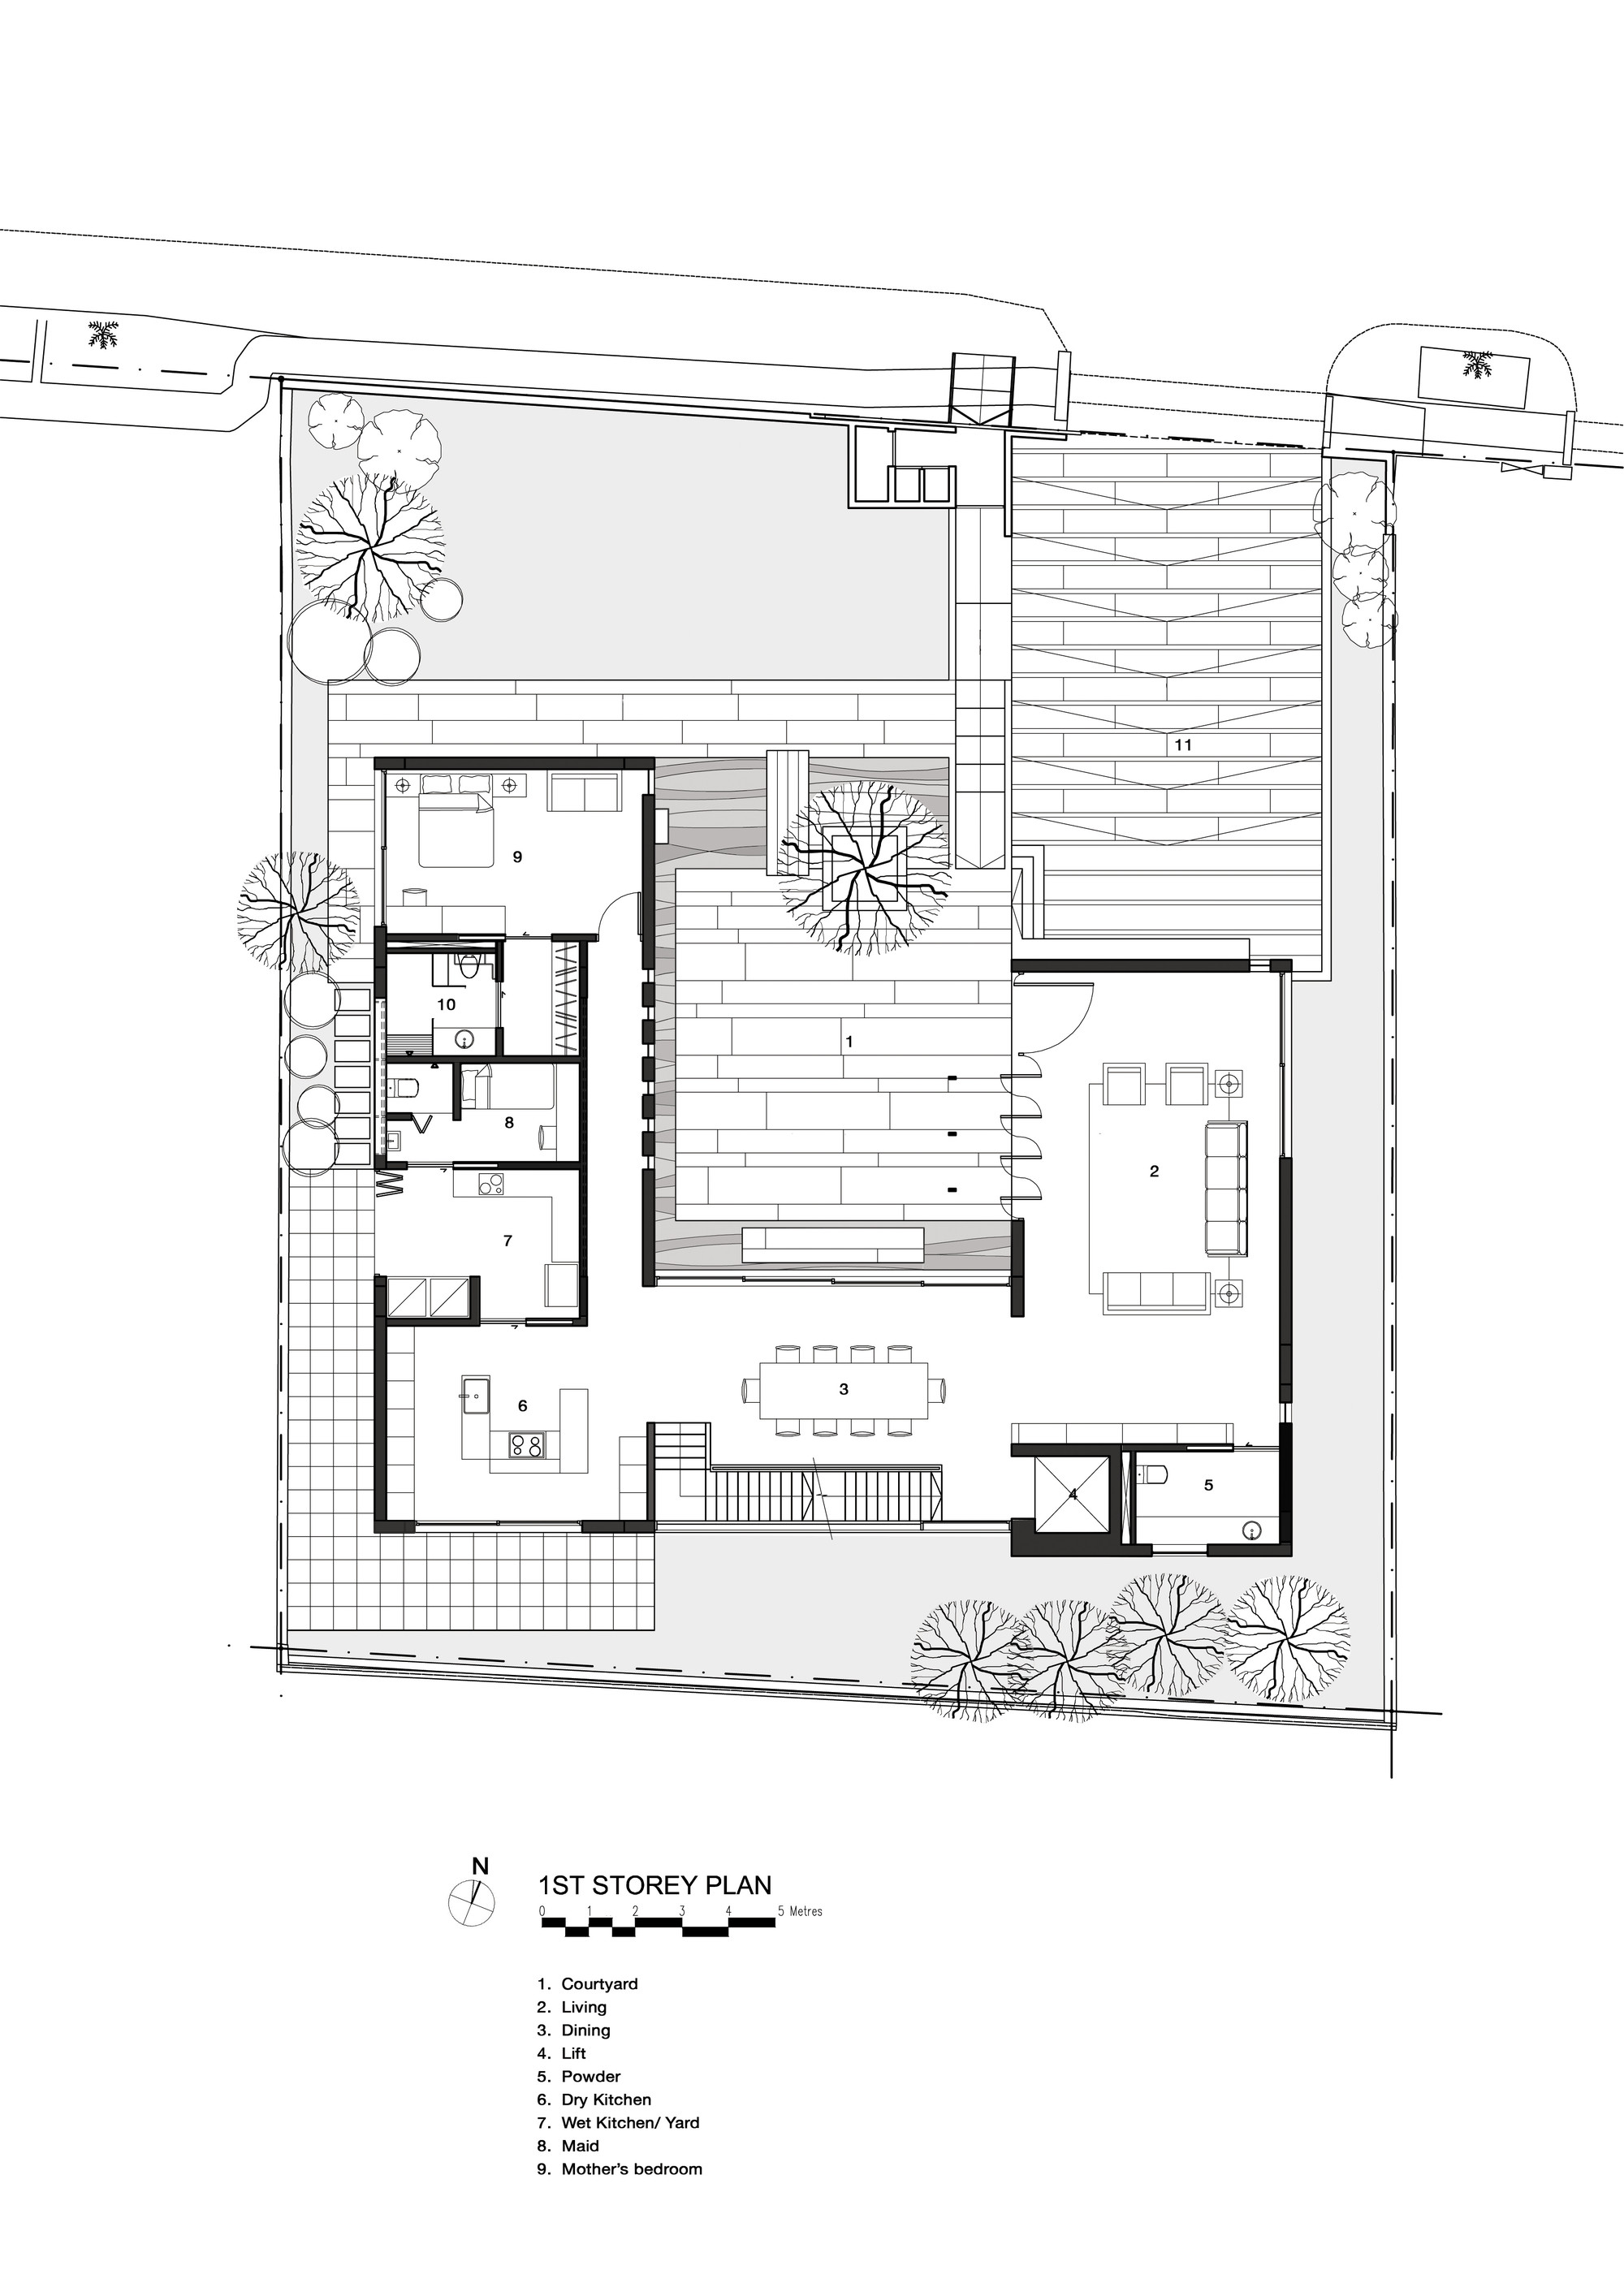 courtyard house plan 1000 images about courtyard home plans on pinterest courtyards the courtyard and courtyard house 6468